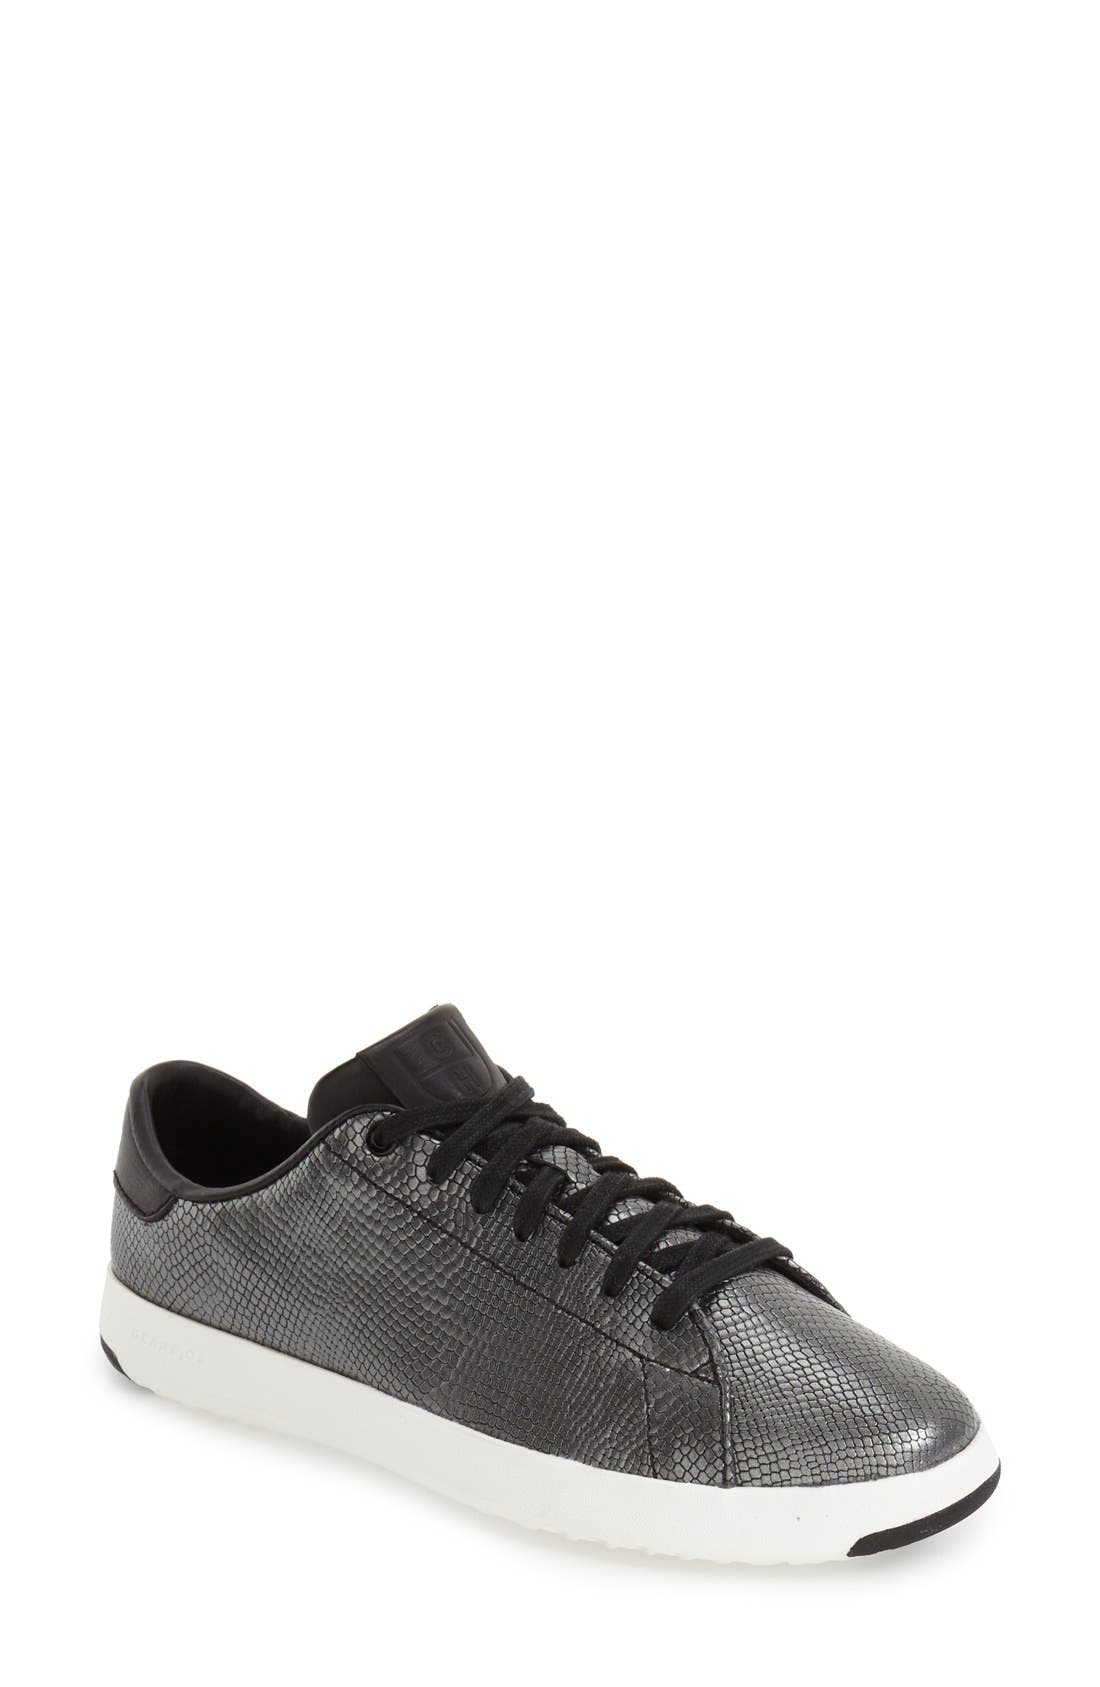 Cole Haan Grandpro Tennis Shoe (Women)